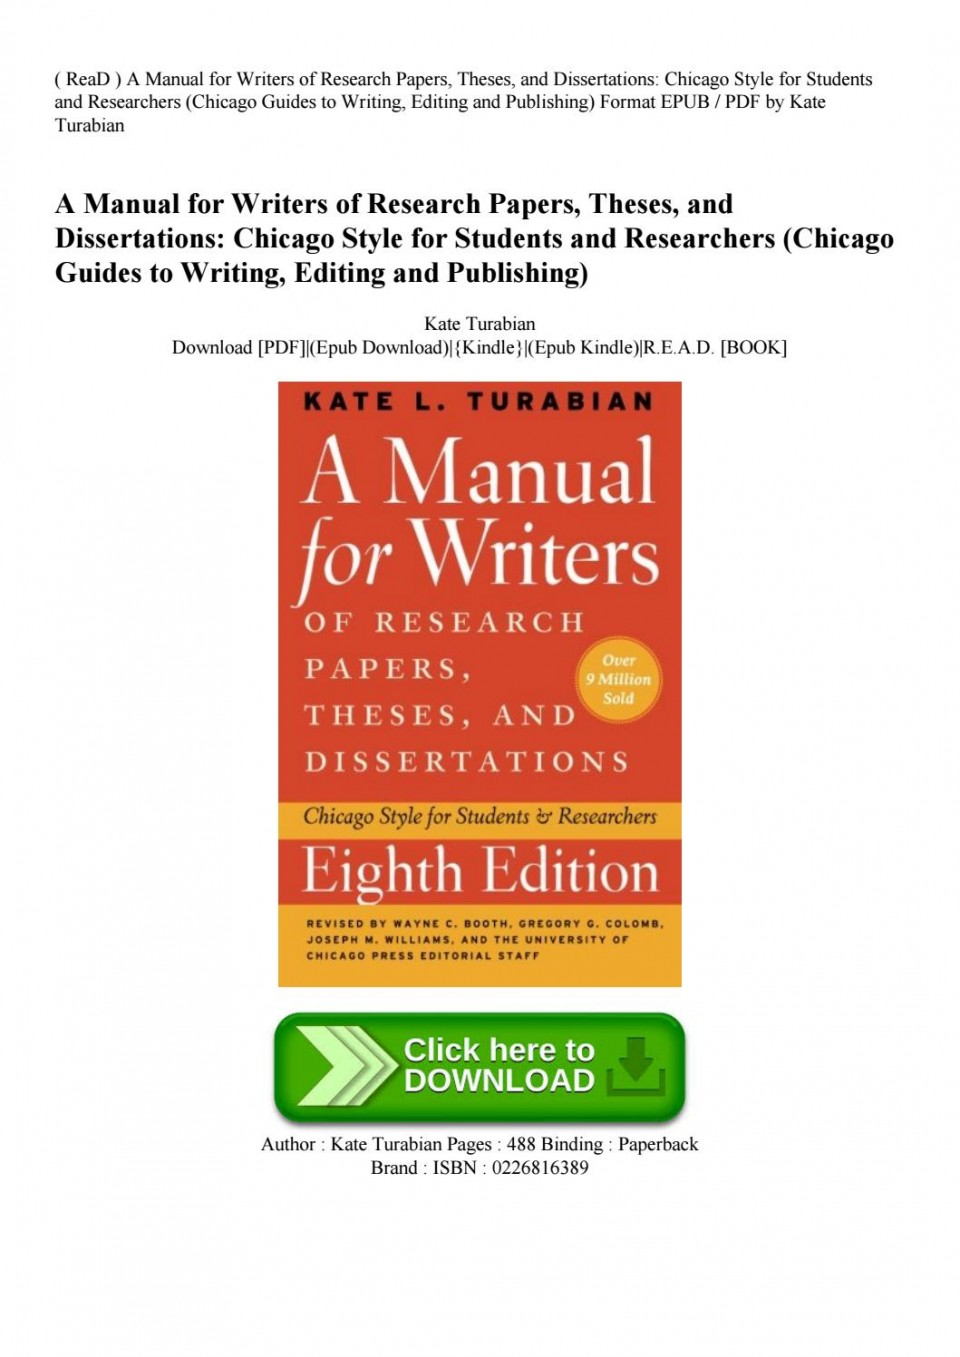 010 Research Paper Manual For Writers Of Papers Theses And Dissertations Page 1 Sensational A 8th Edition Pdf Eighth 960